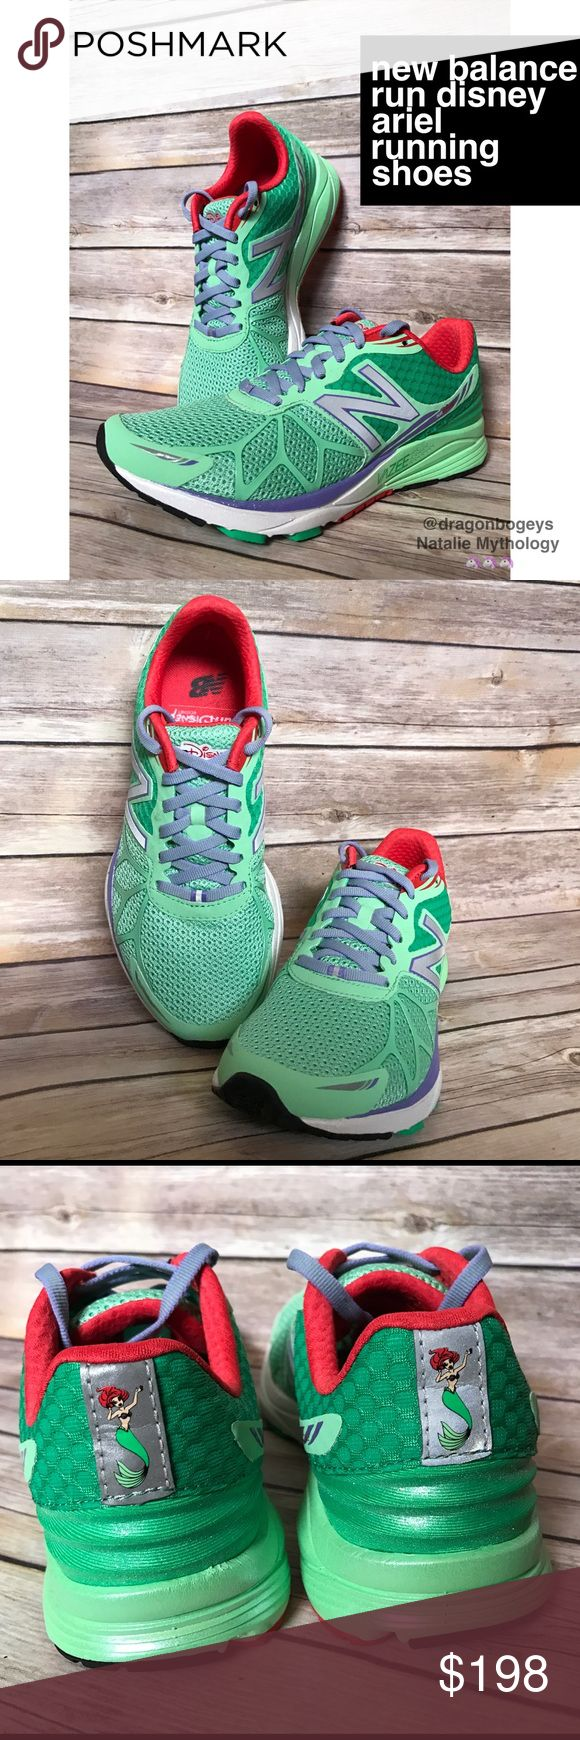 New Balance Run Disney Ariel Running Shoes Super limited edition Little Mermaid sneakers from the Walt Disney World princess marathon weekend. Colors mimic Ariel with green scale like stitching, purple trim and laces, and red interior. The outsole cushioning has a glittery opalescent glow. You can even see Ariel's autograph on the inside of the tongue! Brand new without box. Tried on in the house, never worn outside. They just didn't fit my foot :( Wear these new sneakers and practice…